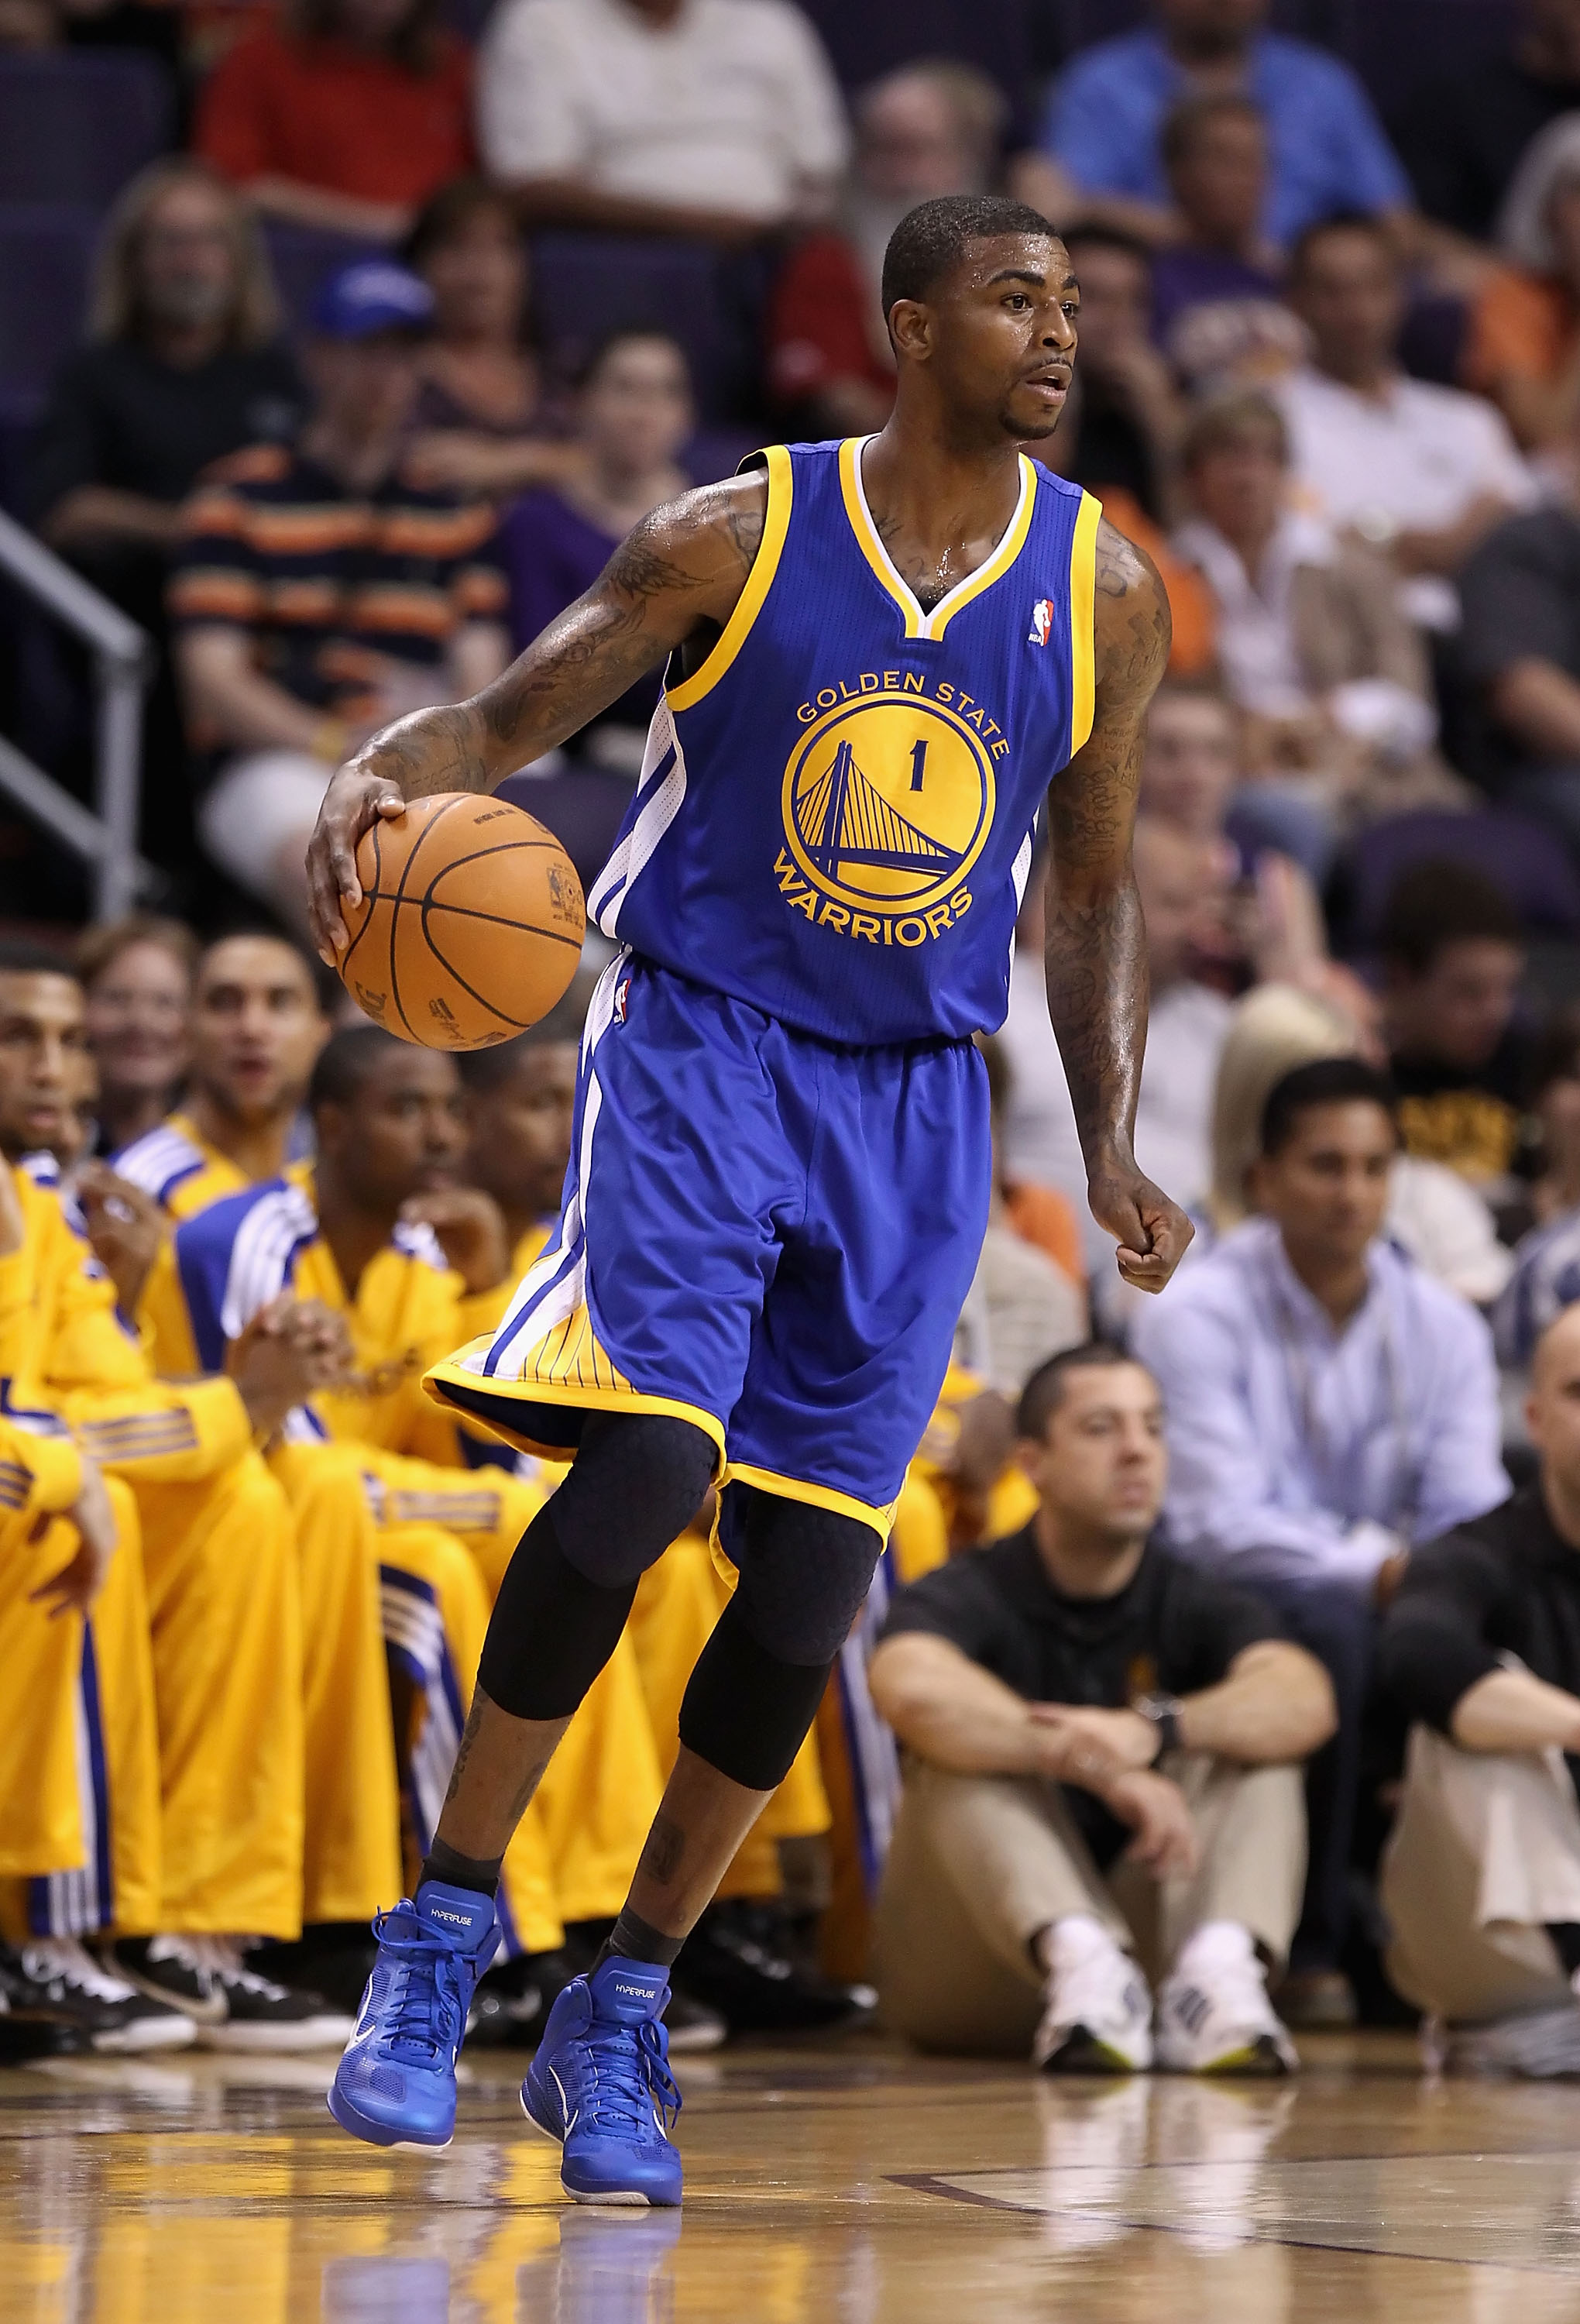 PHOENIX - OCTOBER 19:  Dorell Wright #1 of the Golden State Warriors handles the ball during the preseason NBA game against the Phoenix Suns at US Airways Center on October 19, 2010 in Phoenix, Arizona. NOTE TO USER: User expressly acknowledges and agrees